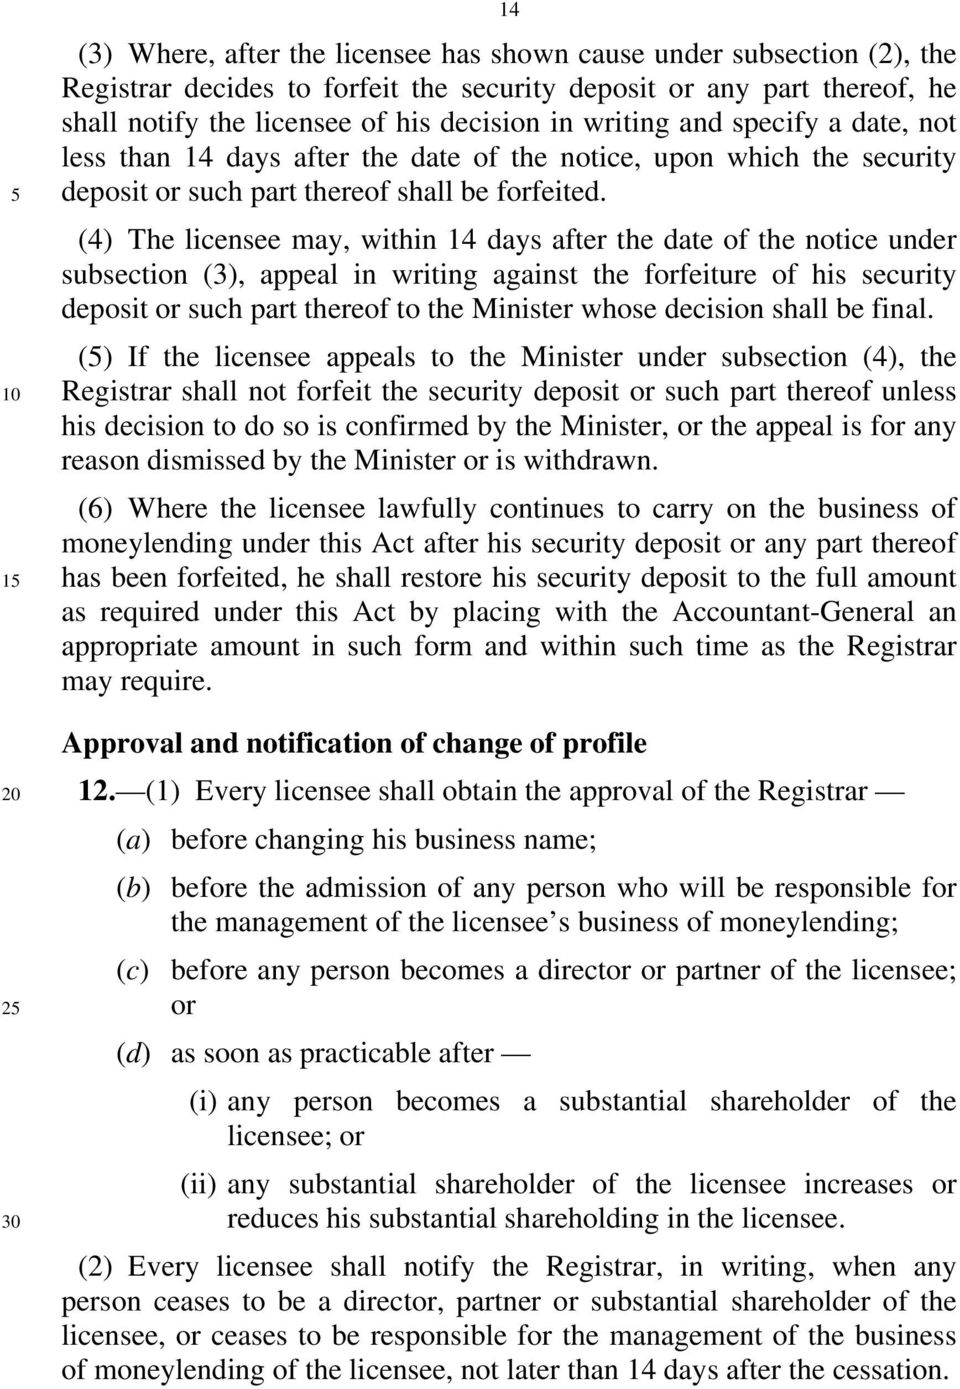 (4) The licensee may, within 14 days after the date of the notice under subsection (3), appeal in writing against the forfeiture of his security deposit or such part thereof to the Minister whose